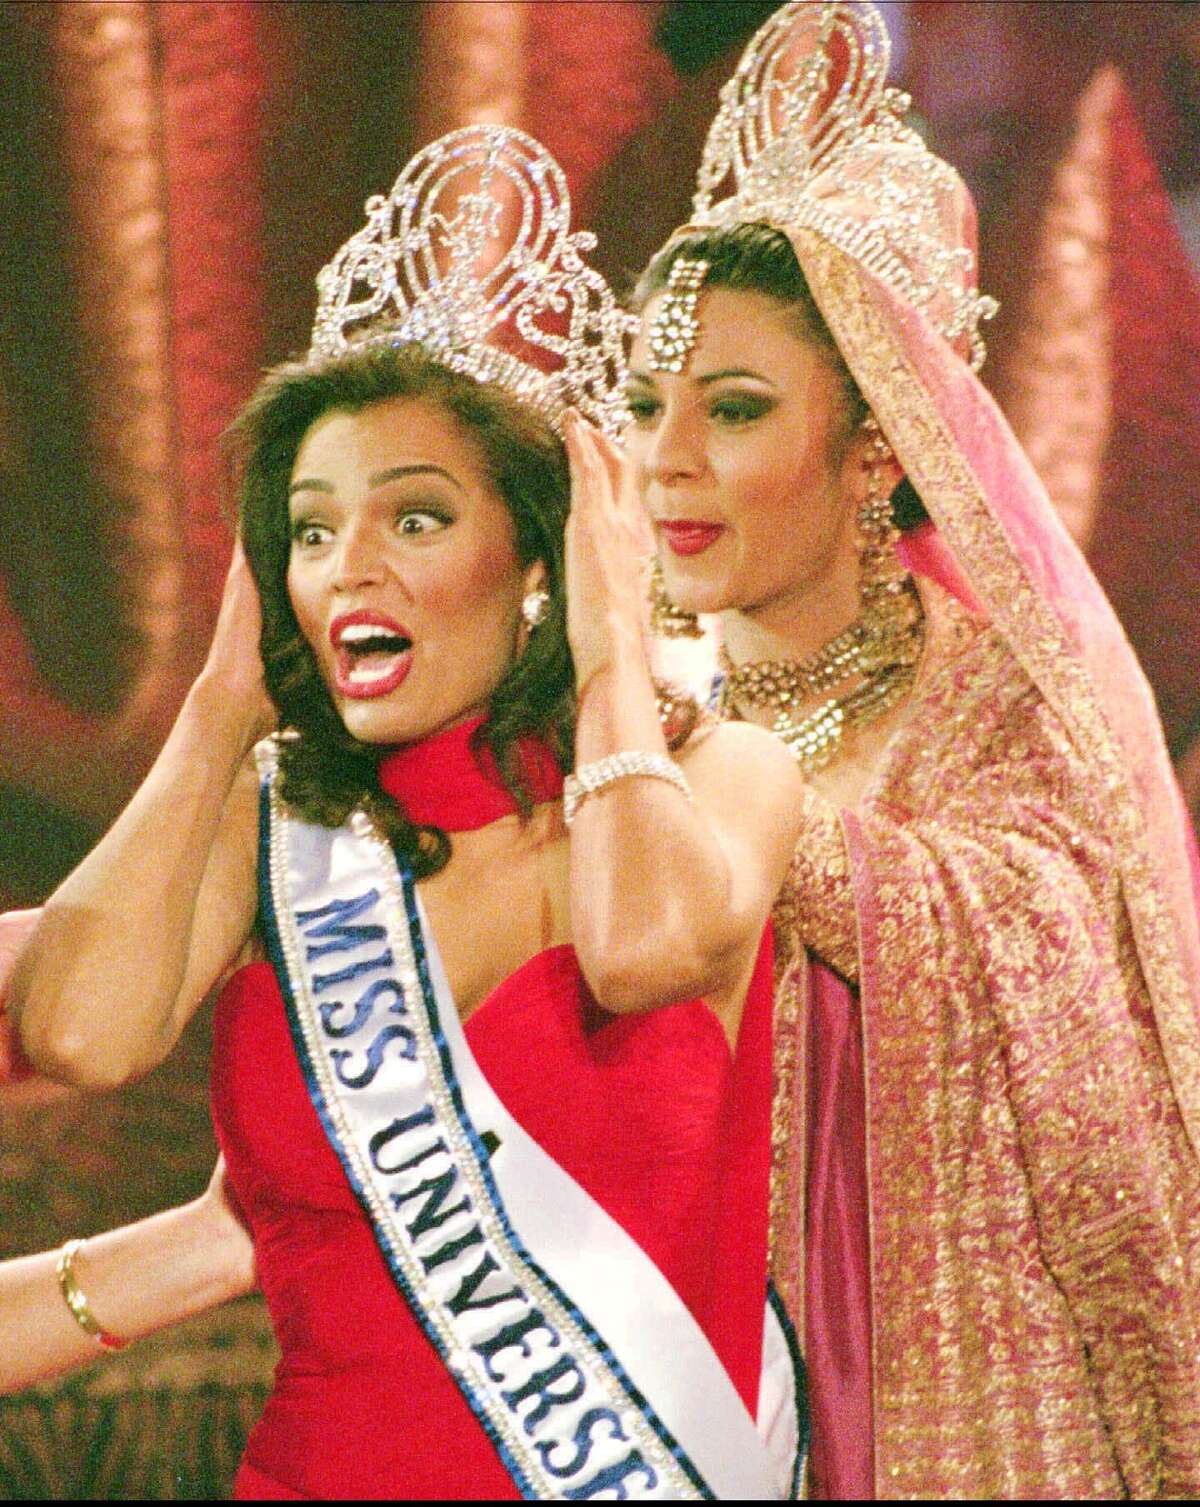 Miss USA Chelsi Smith, front, cries out for joy as she is crowned Miss Universe by the outgoing Miss Universe from India Sushmita Sen, at the conclusion of the Miss Universe pageant in Windhoek, Saturday May 13, 1995. (AP Photo/Adil Bradlow)